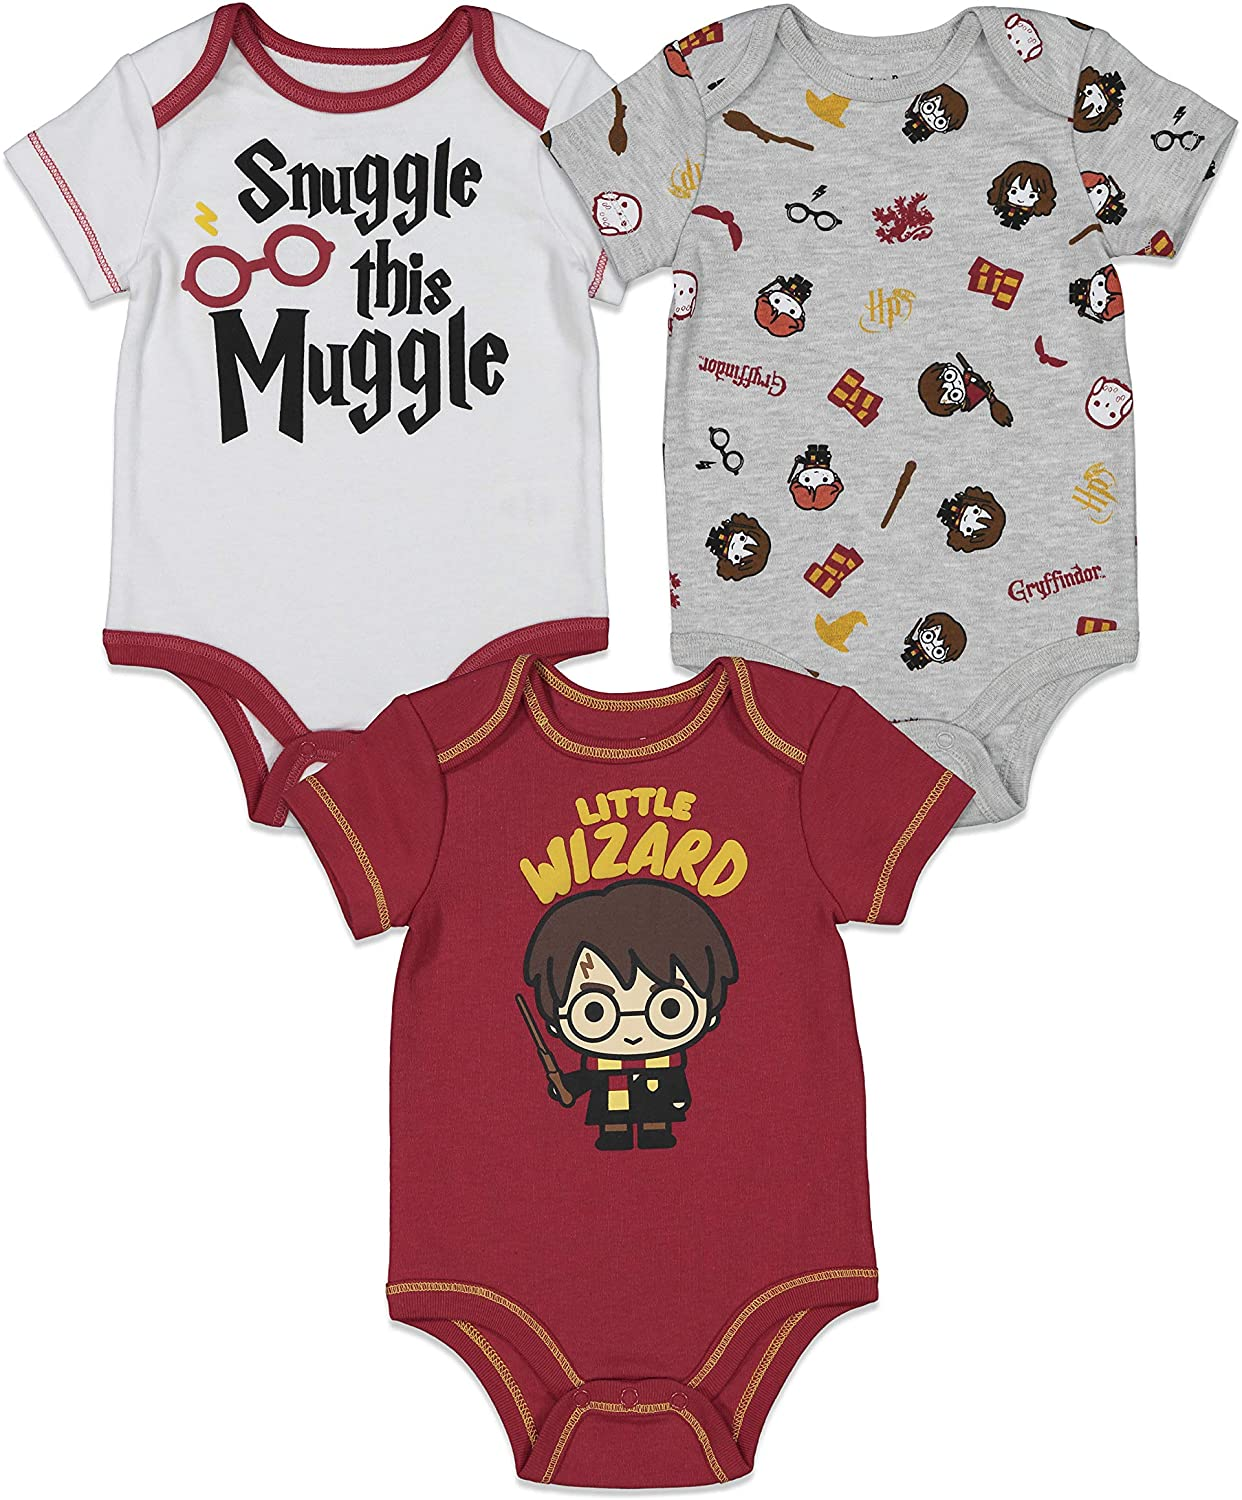 Harry Potter 3 Colorado Springs Mall Pack Super intense SALE Short Sleeve Red Gray Bodysuits White